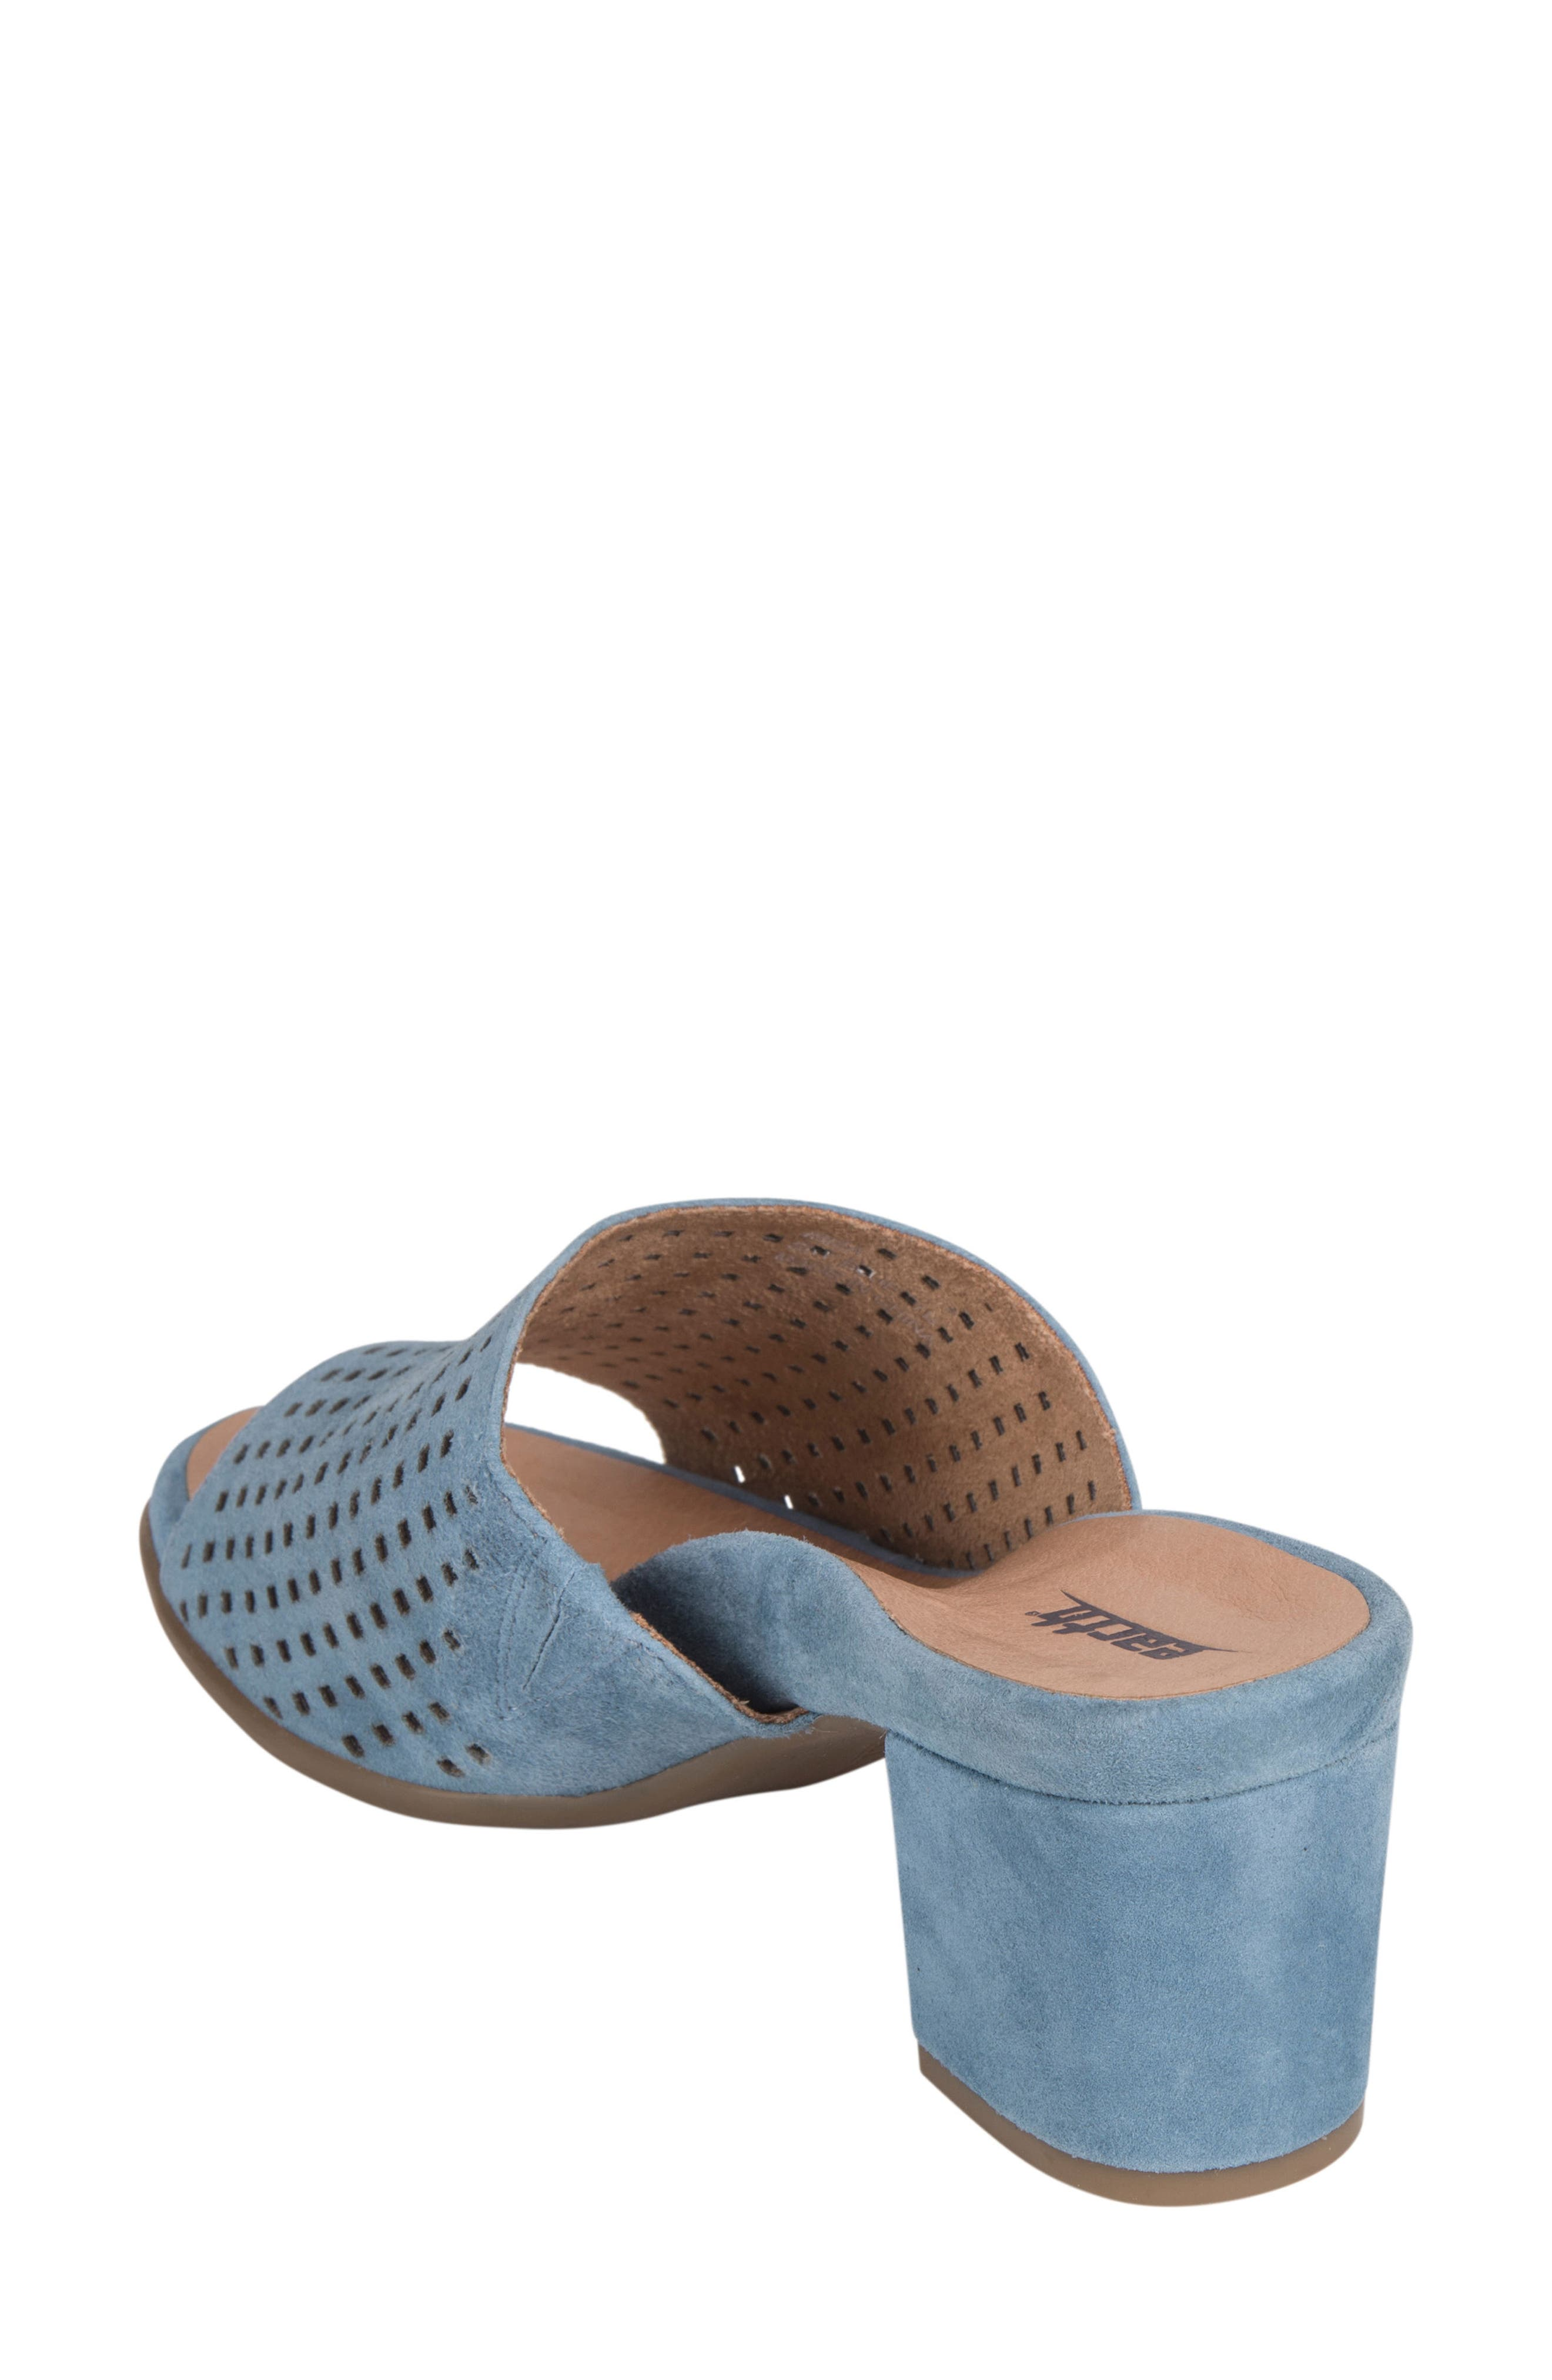 Ibiza Perforated Sandal,                             Alternate thumbnail 2, color,                             SKY BLUE SUEDE